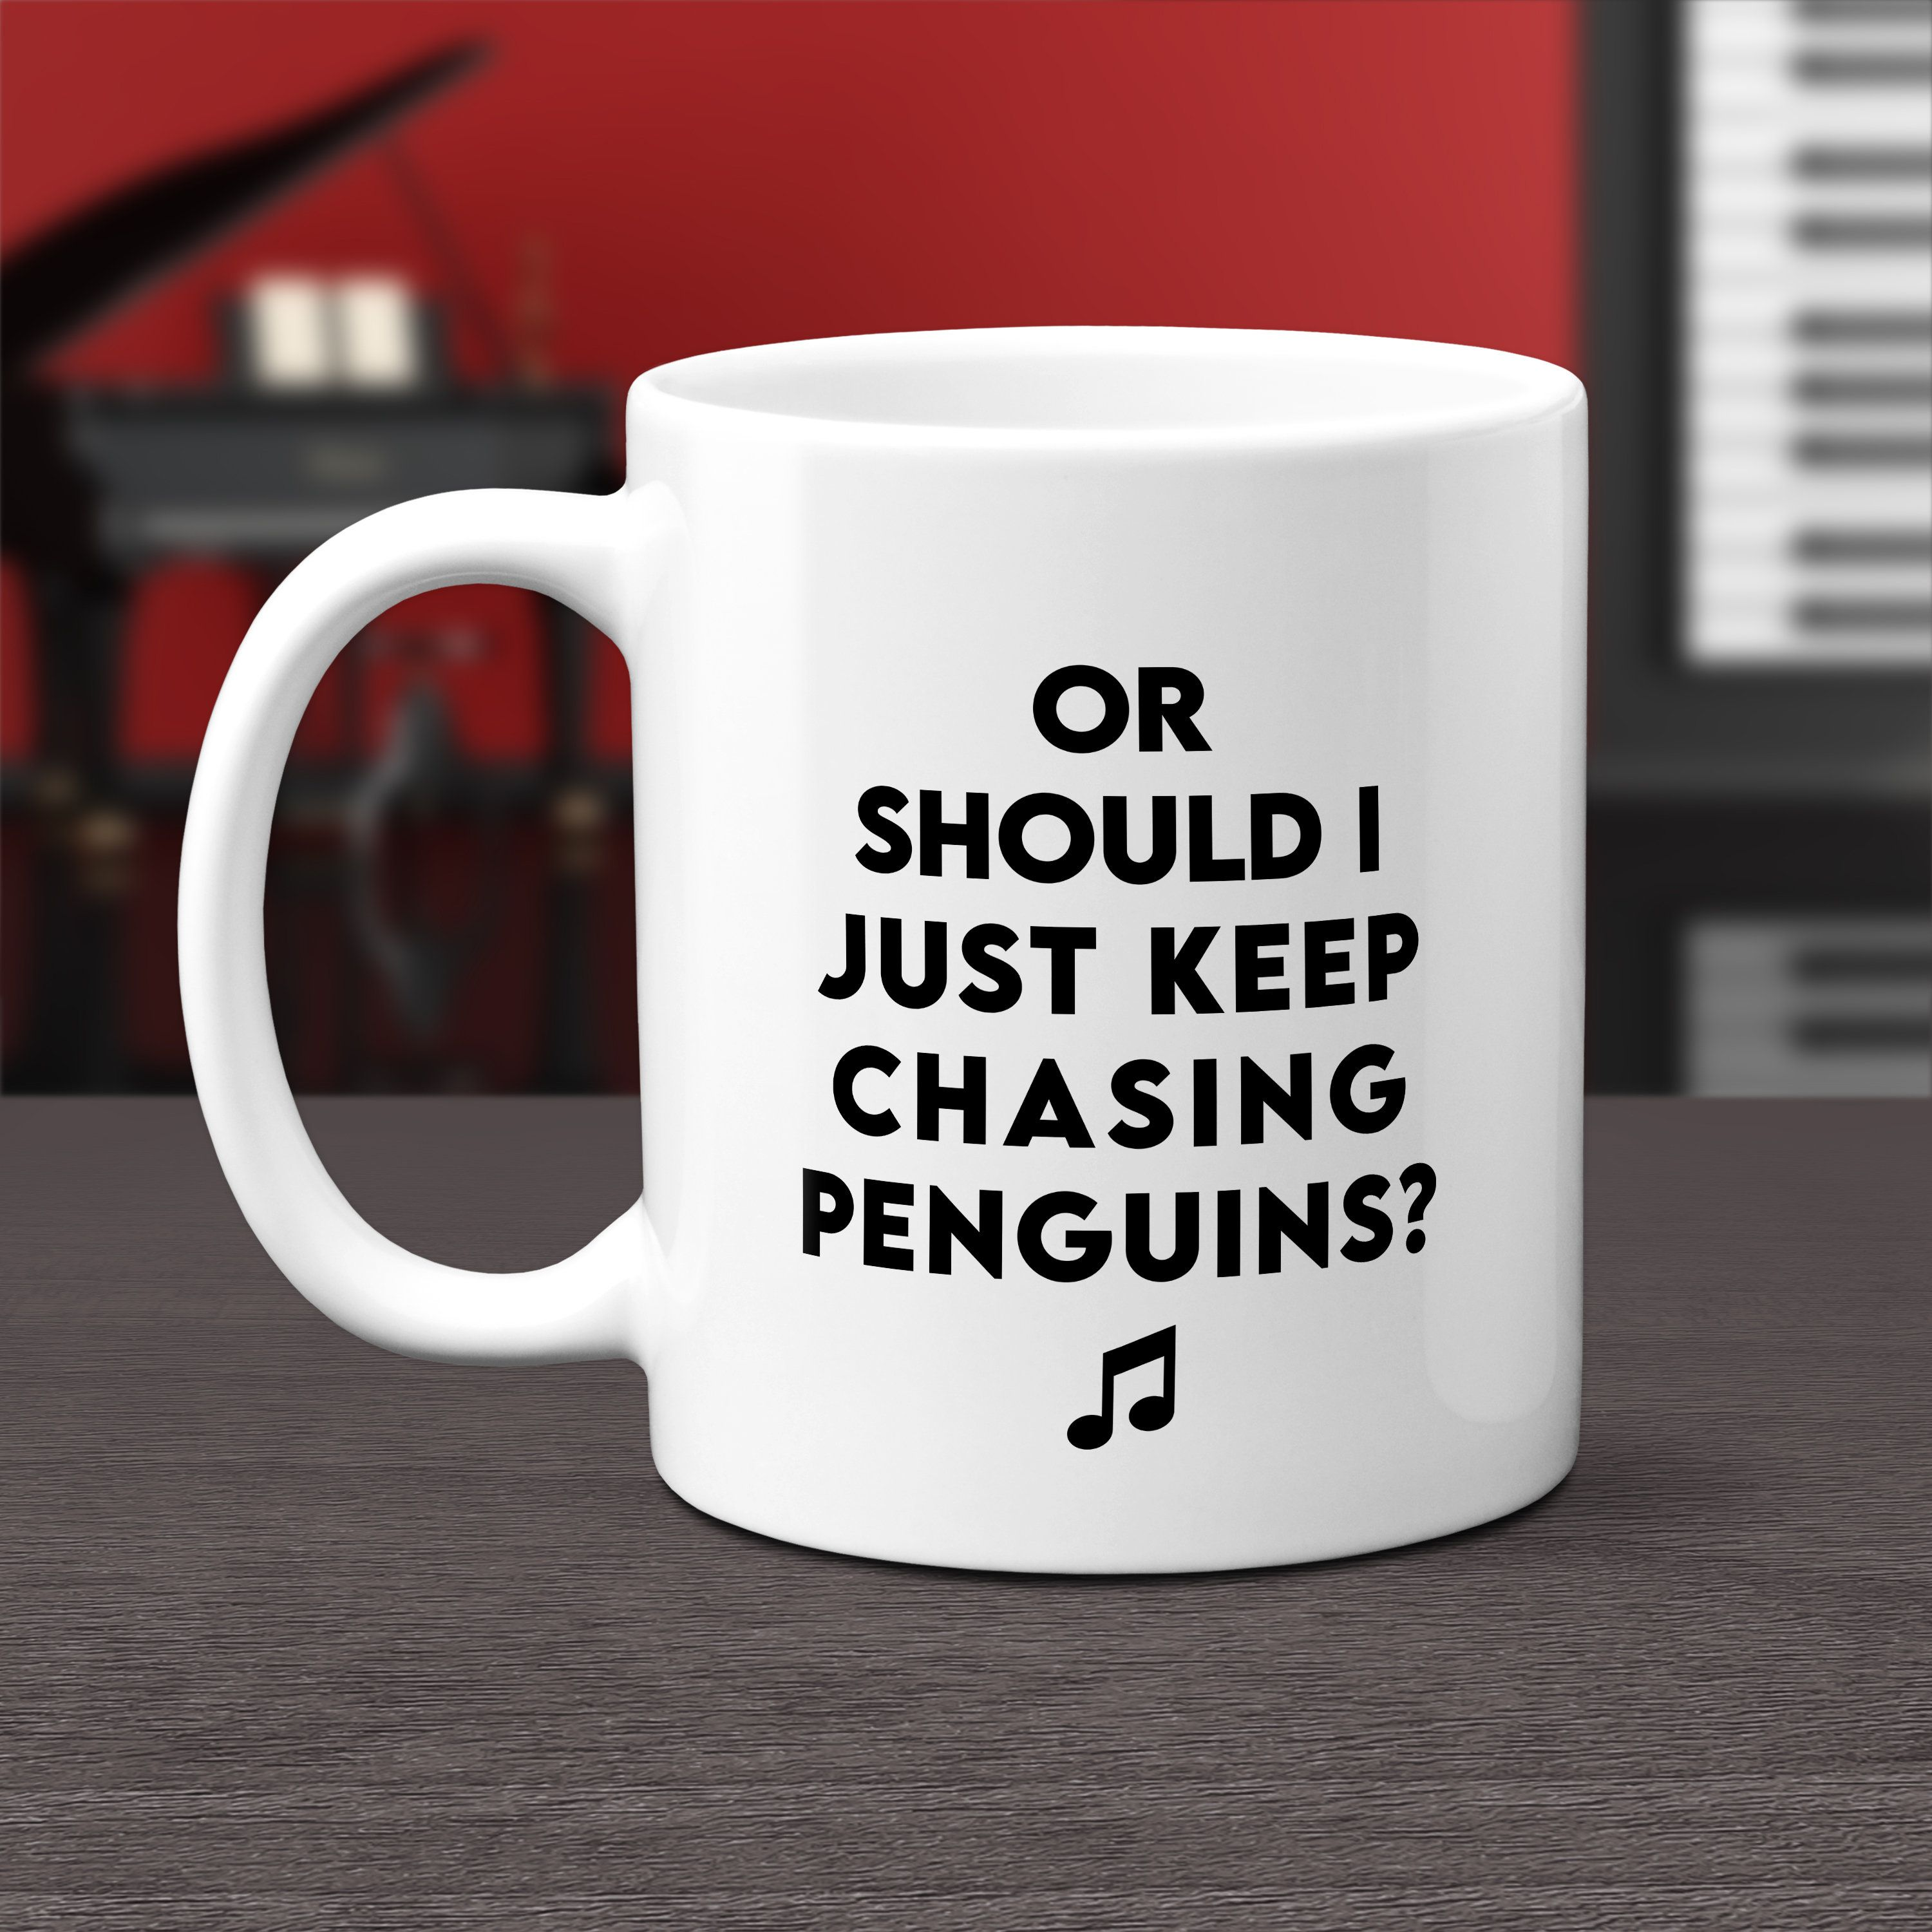 Funny Misheard Song Lyrics Coffee/Tea Gift Mug //Or Should